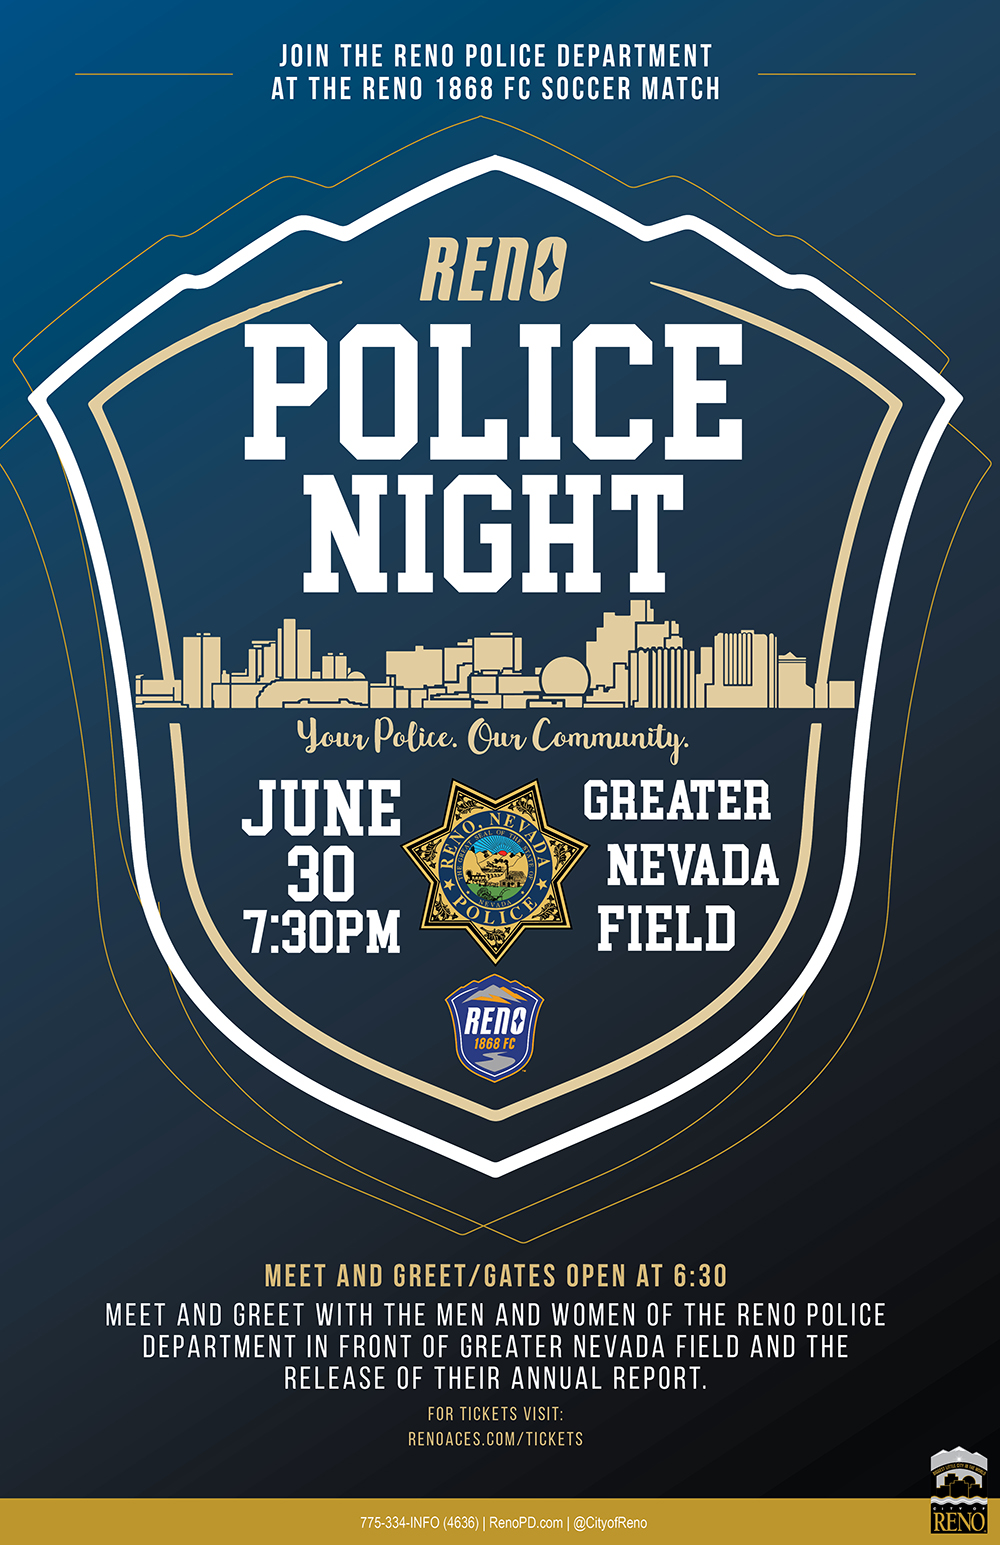 Reno Police Night at Greater Nevada Field flyer